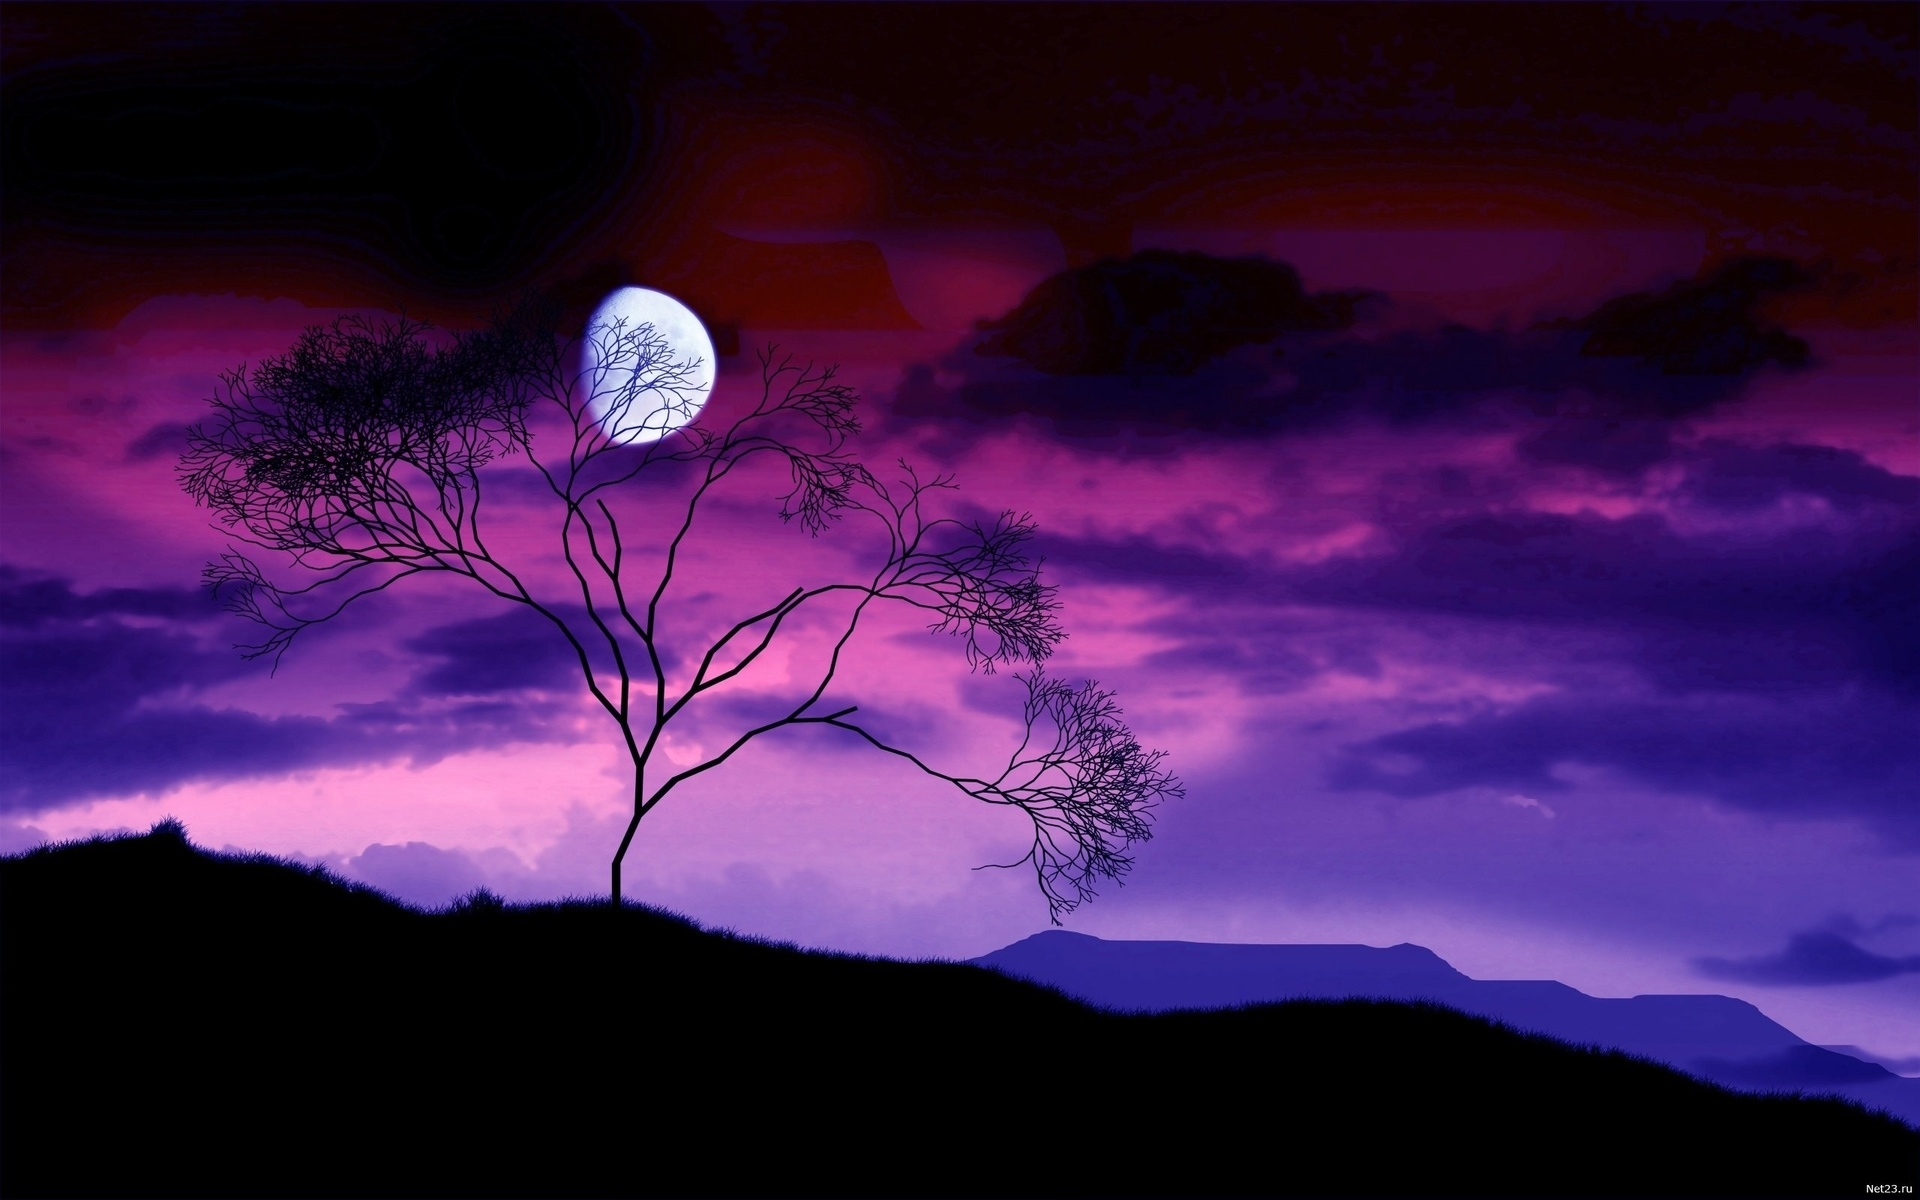 nature landscapes hills mountains sky clouds night dusk moon purple 1920x1200